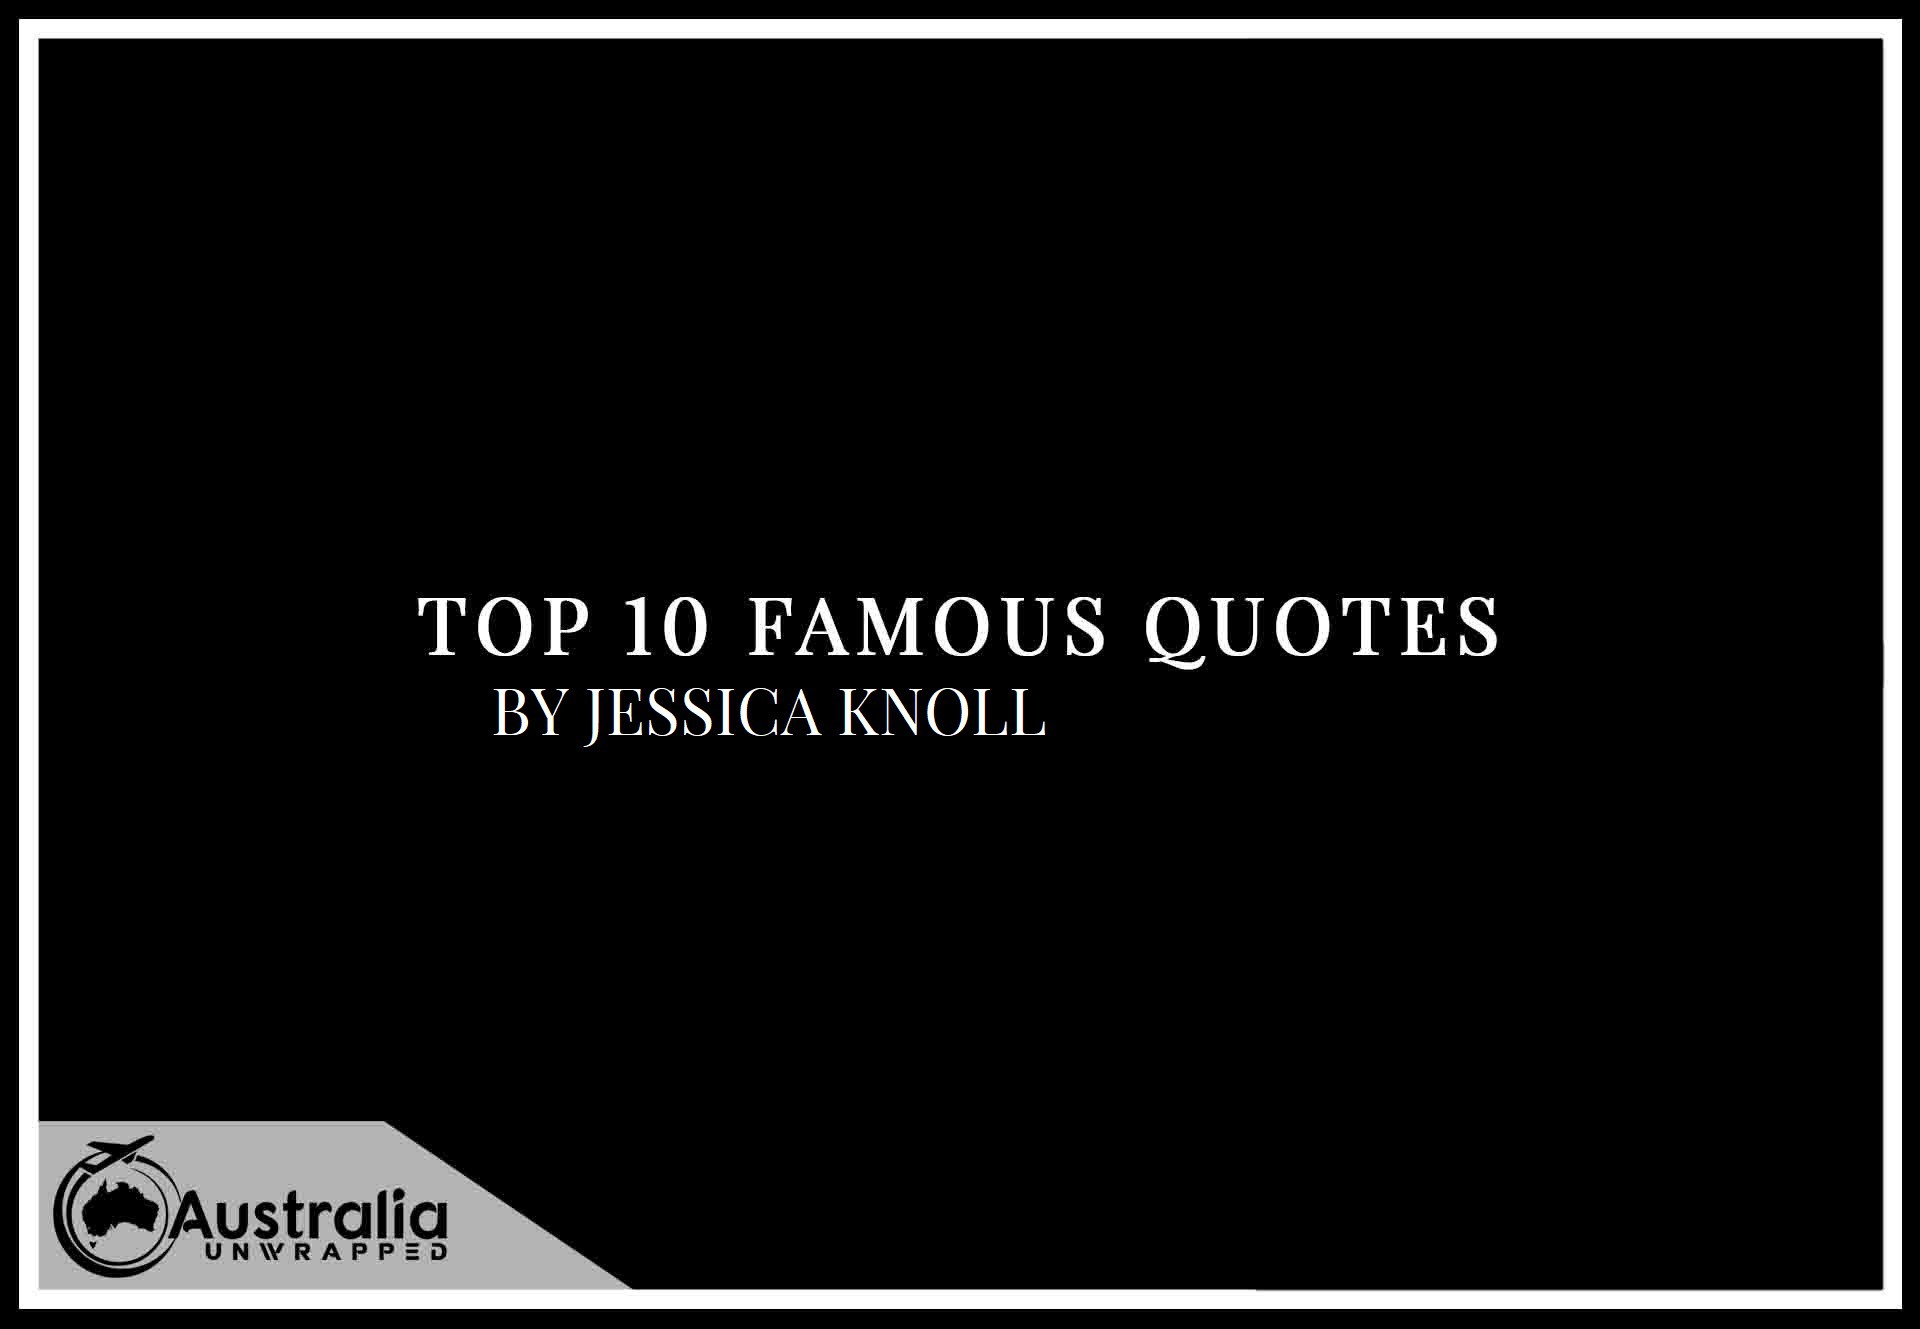 Top 10 Famous Quotes by Author Jessica Knoll